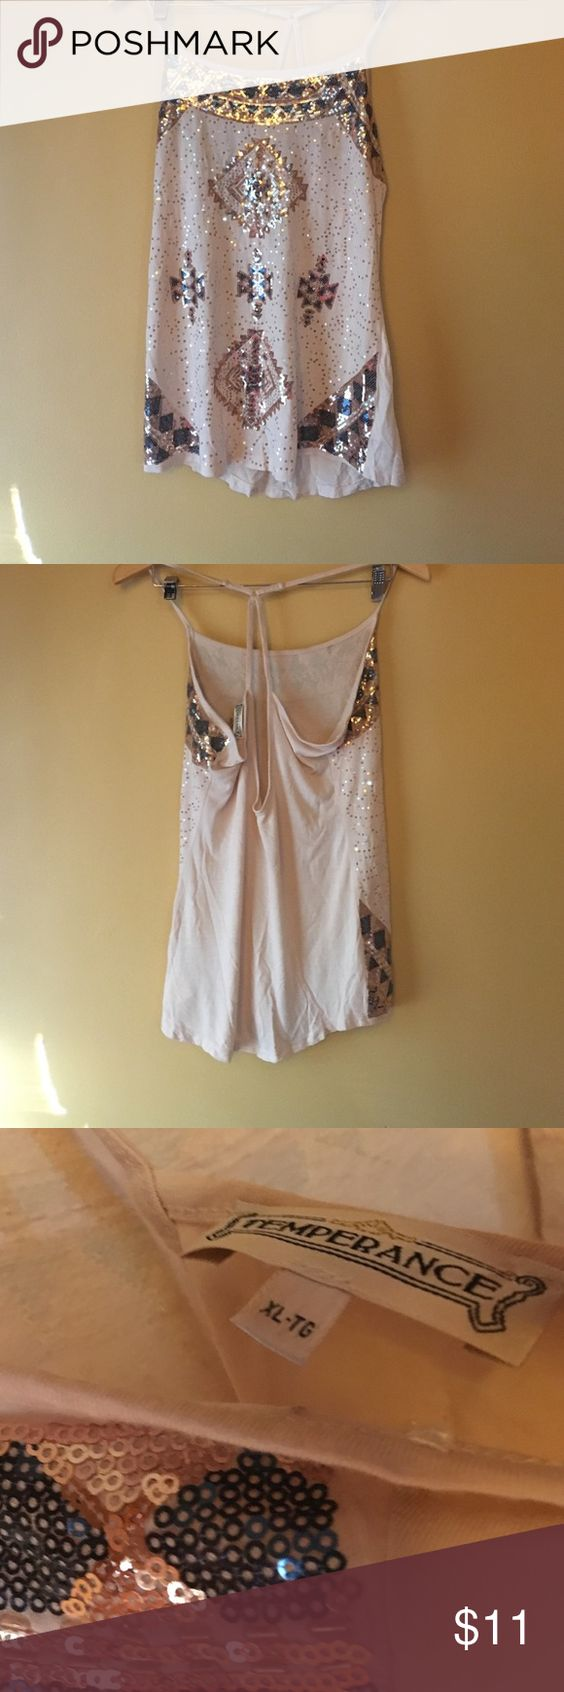 Cute tank top, XL Great condition, a little wrinkled from storage, all sequins appear in tact. Very cute & shiny! Thank you for looking and I will take more pictures if needed, let me know!  Temperance Tops Tank Tops